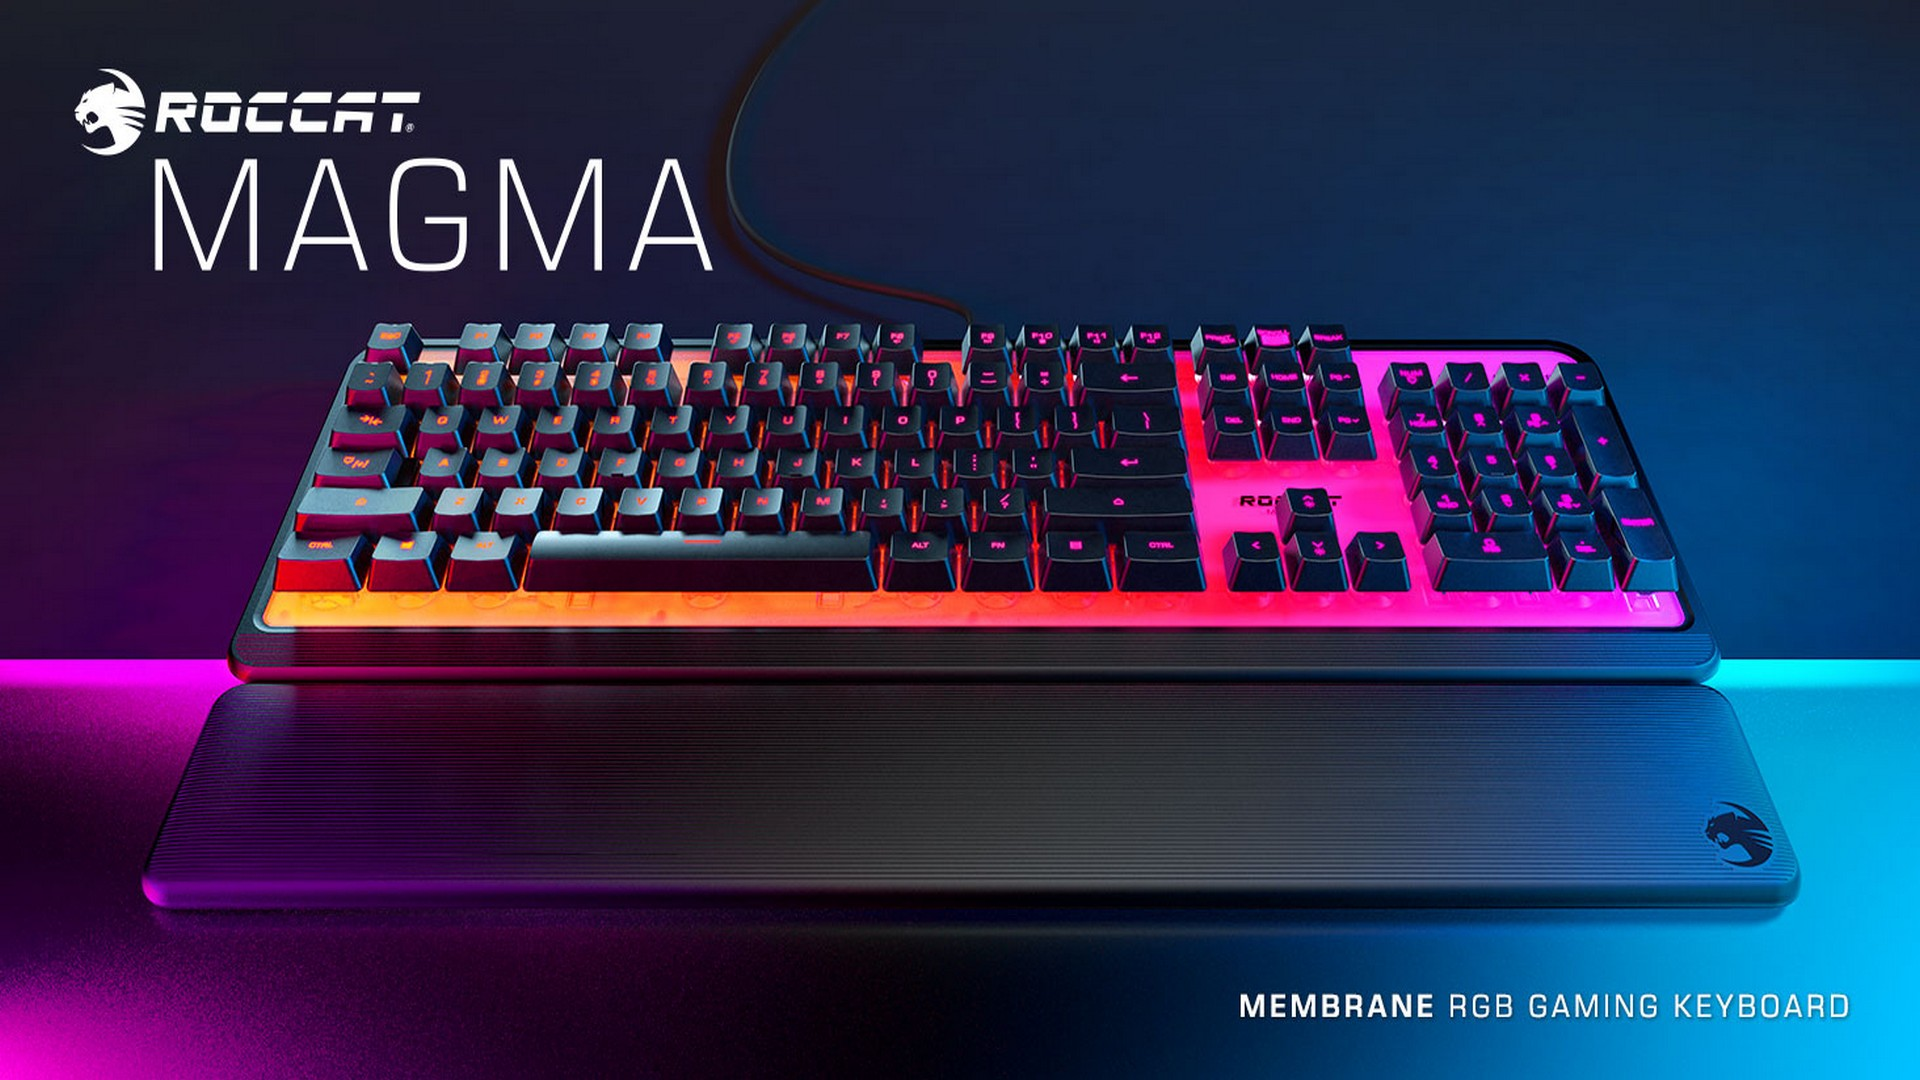 ROCCAT'S Vibrant Magma Membrane Keyboard Now Available Exclusively At JB HI-FI